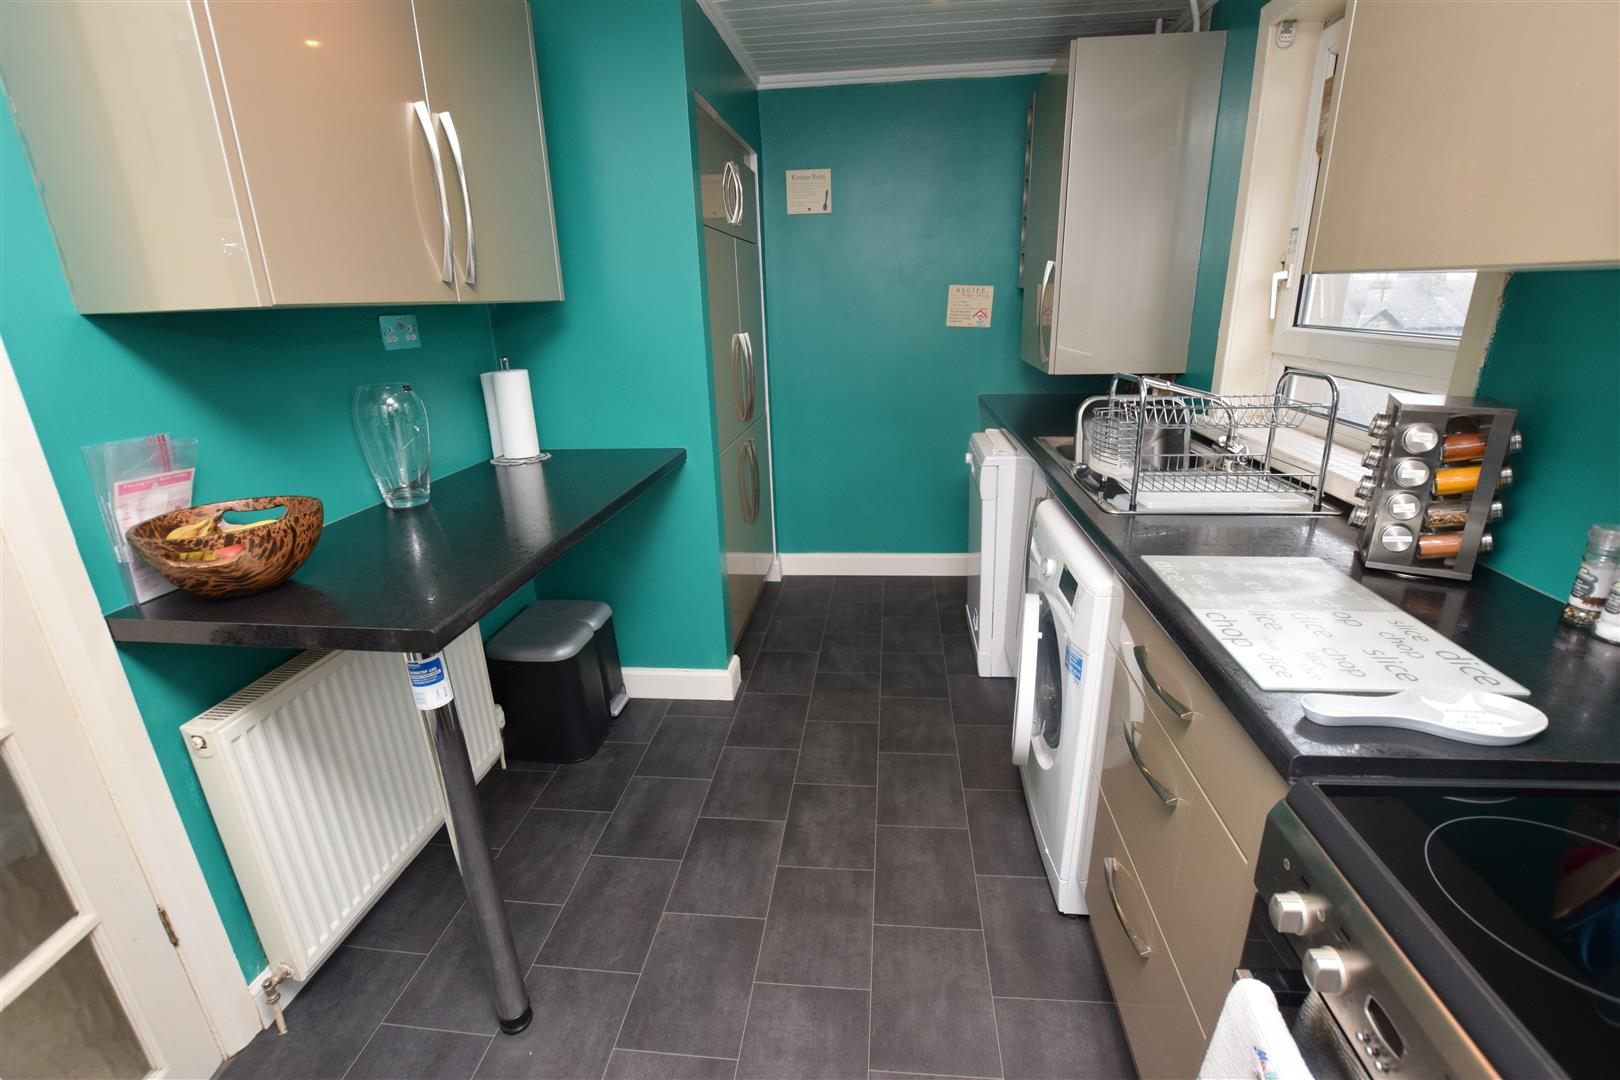 2 Bedroom Flat For Sale in Perth   Next Home Online